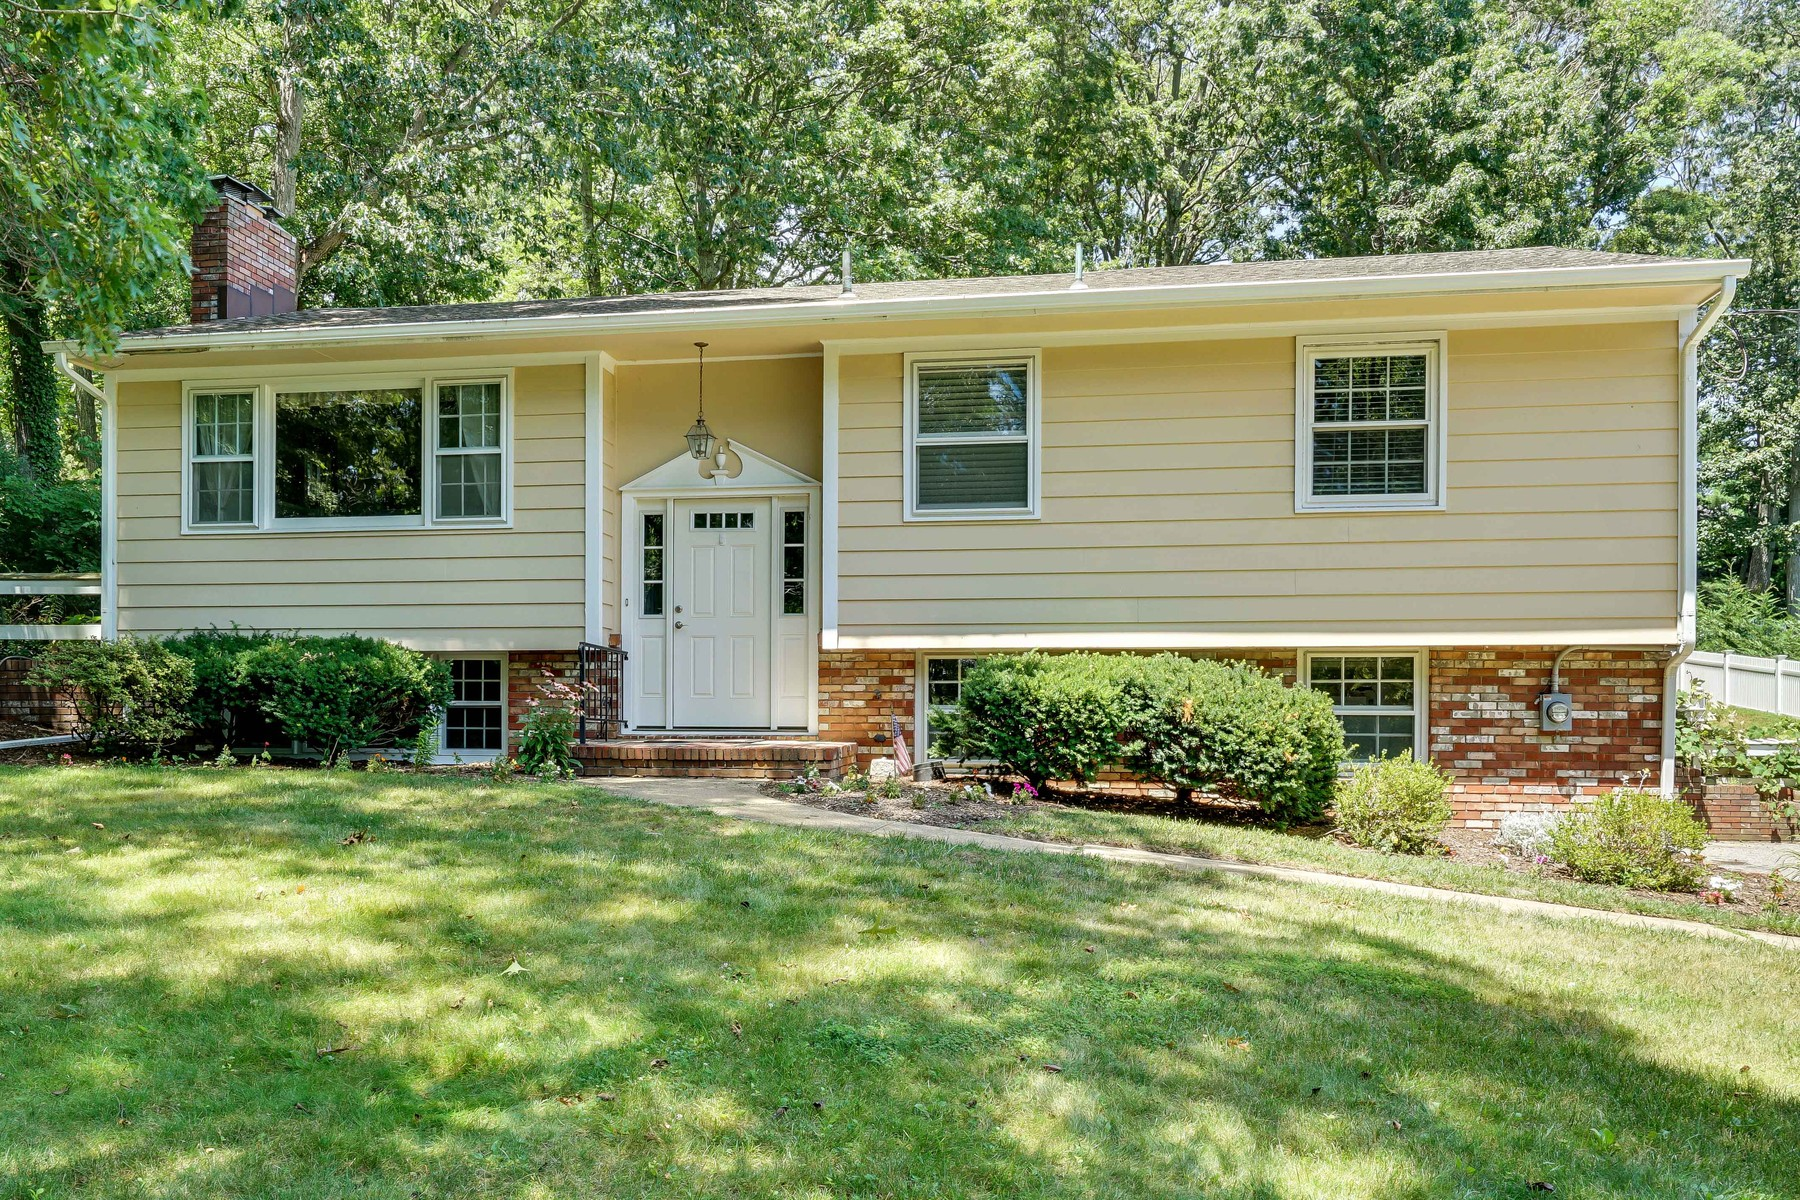 Single Family Home for Sale at Manasquan Park Section of Wall 1610 Lakewood Road Manasquan, New Jersey, 08736 United States